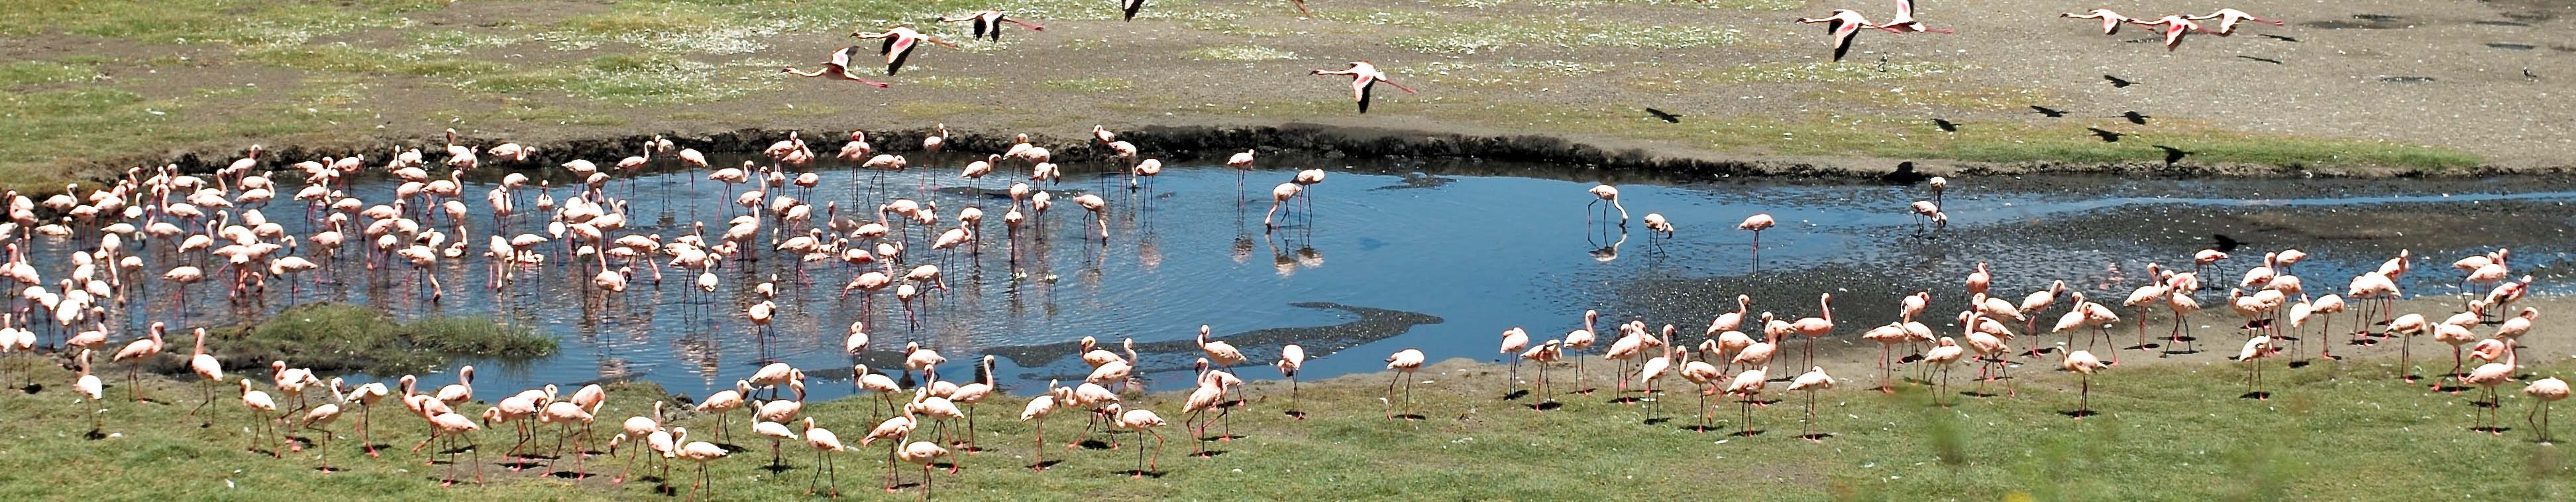 Flamingos in Arusha National Park | Wikimedia